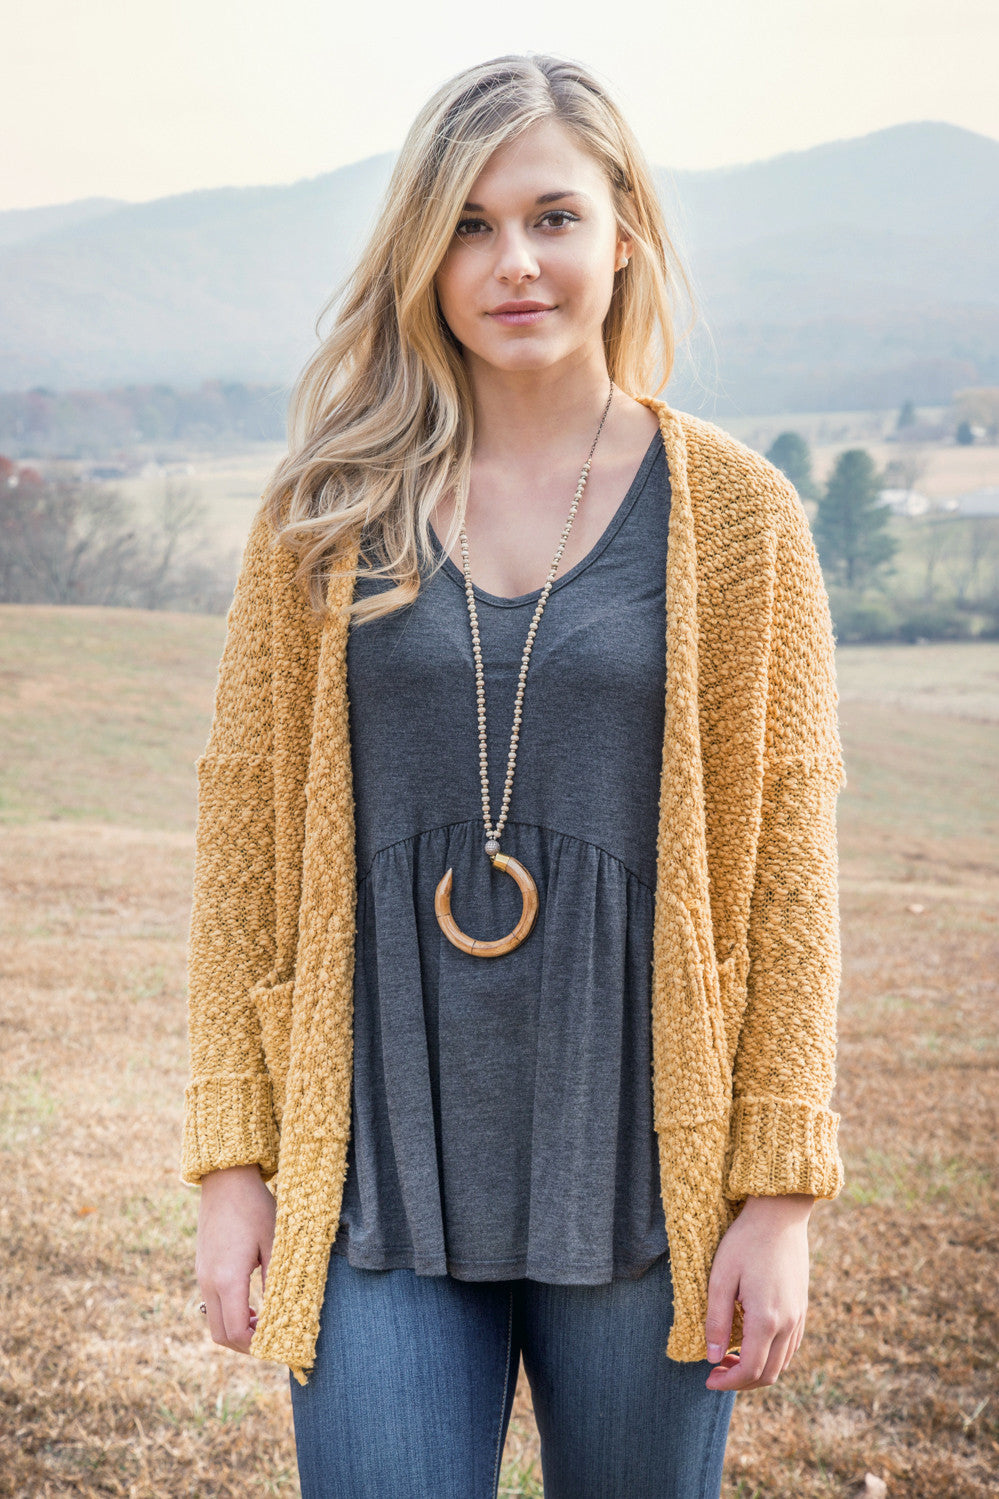 The Colby Necklace | Betsy Pittard Designs